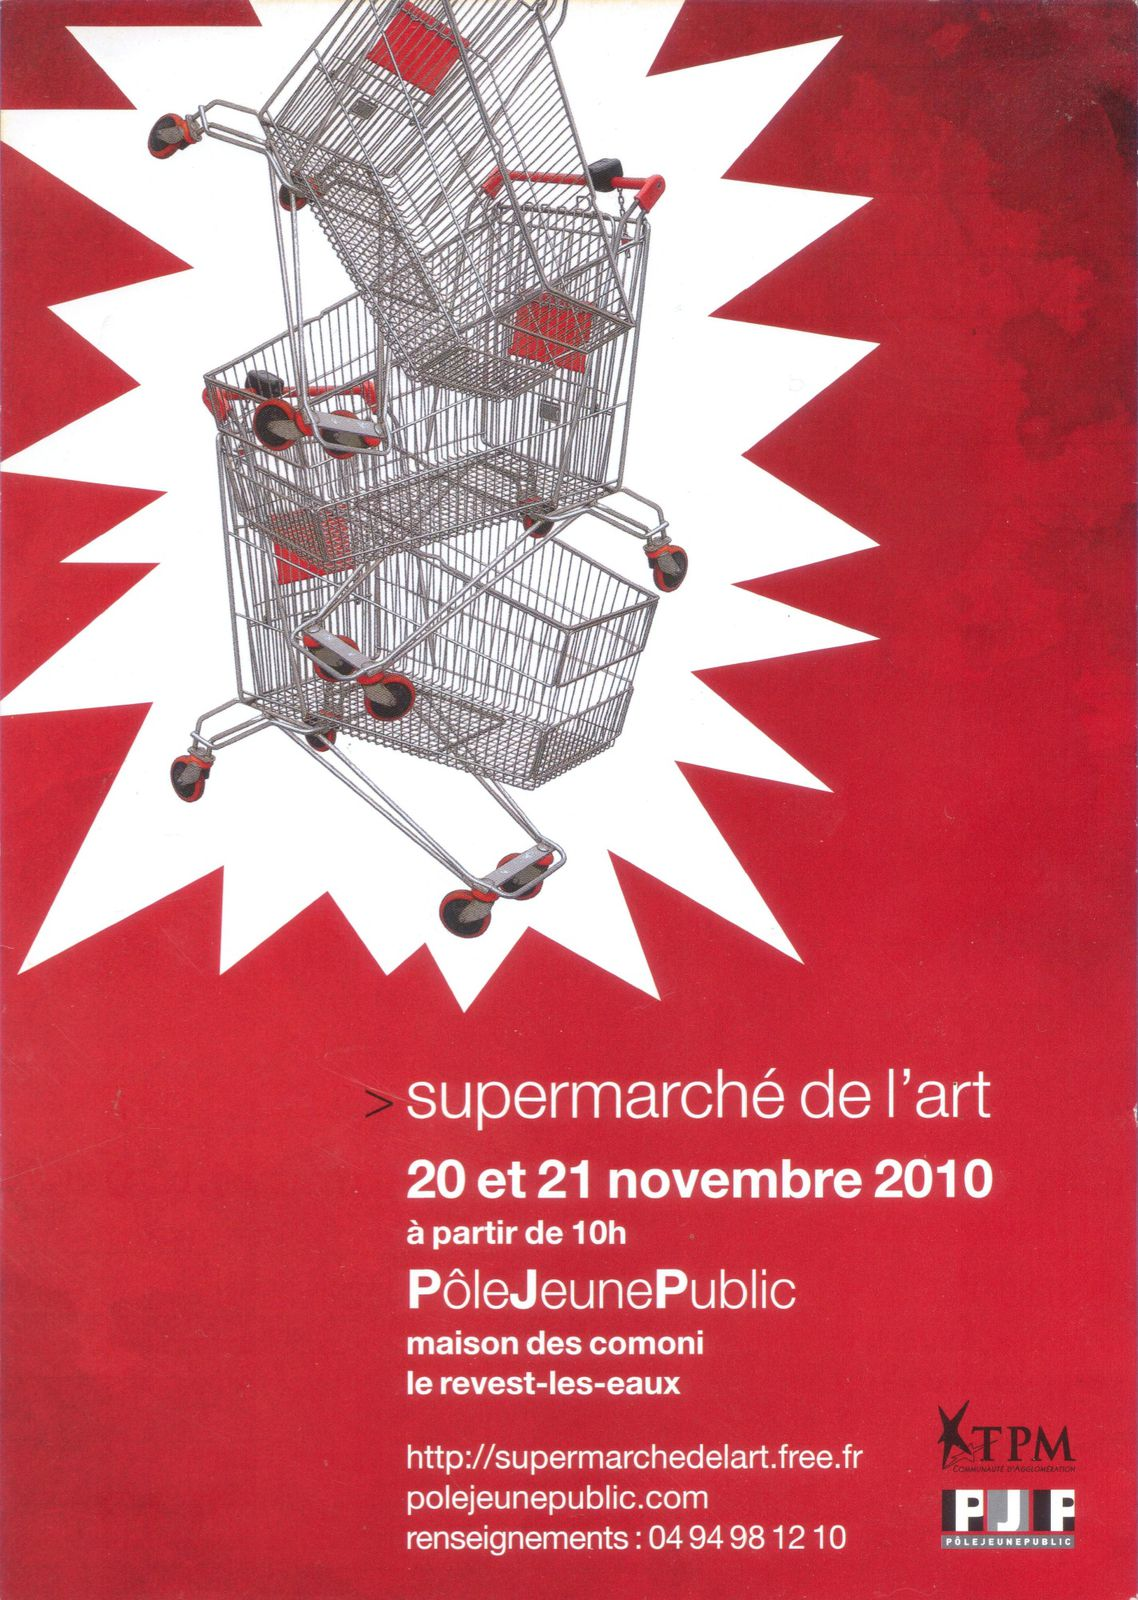 supermarché de l'art 2010